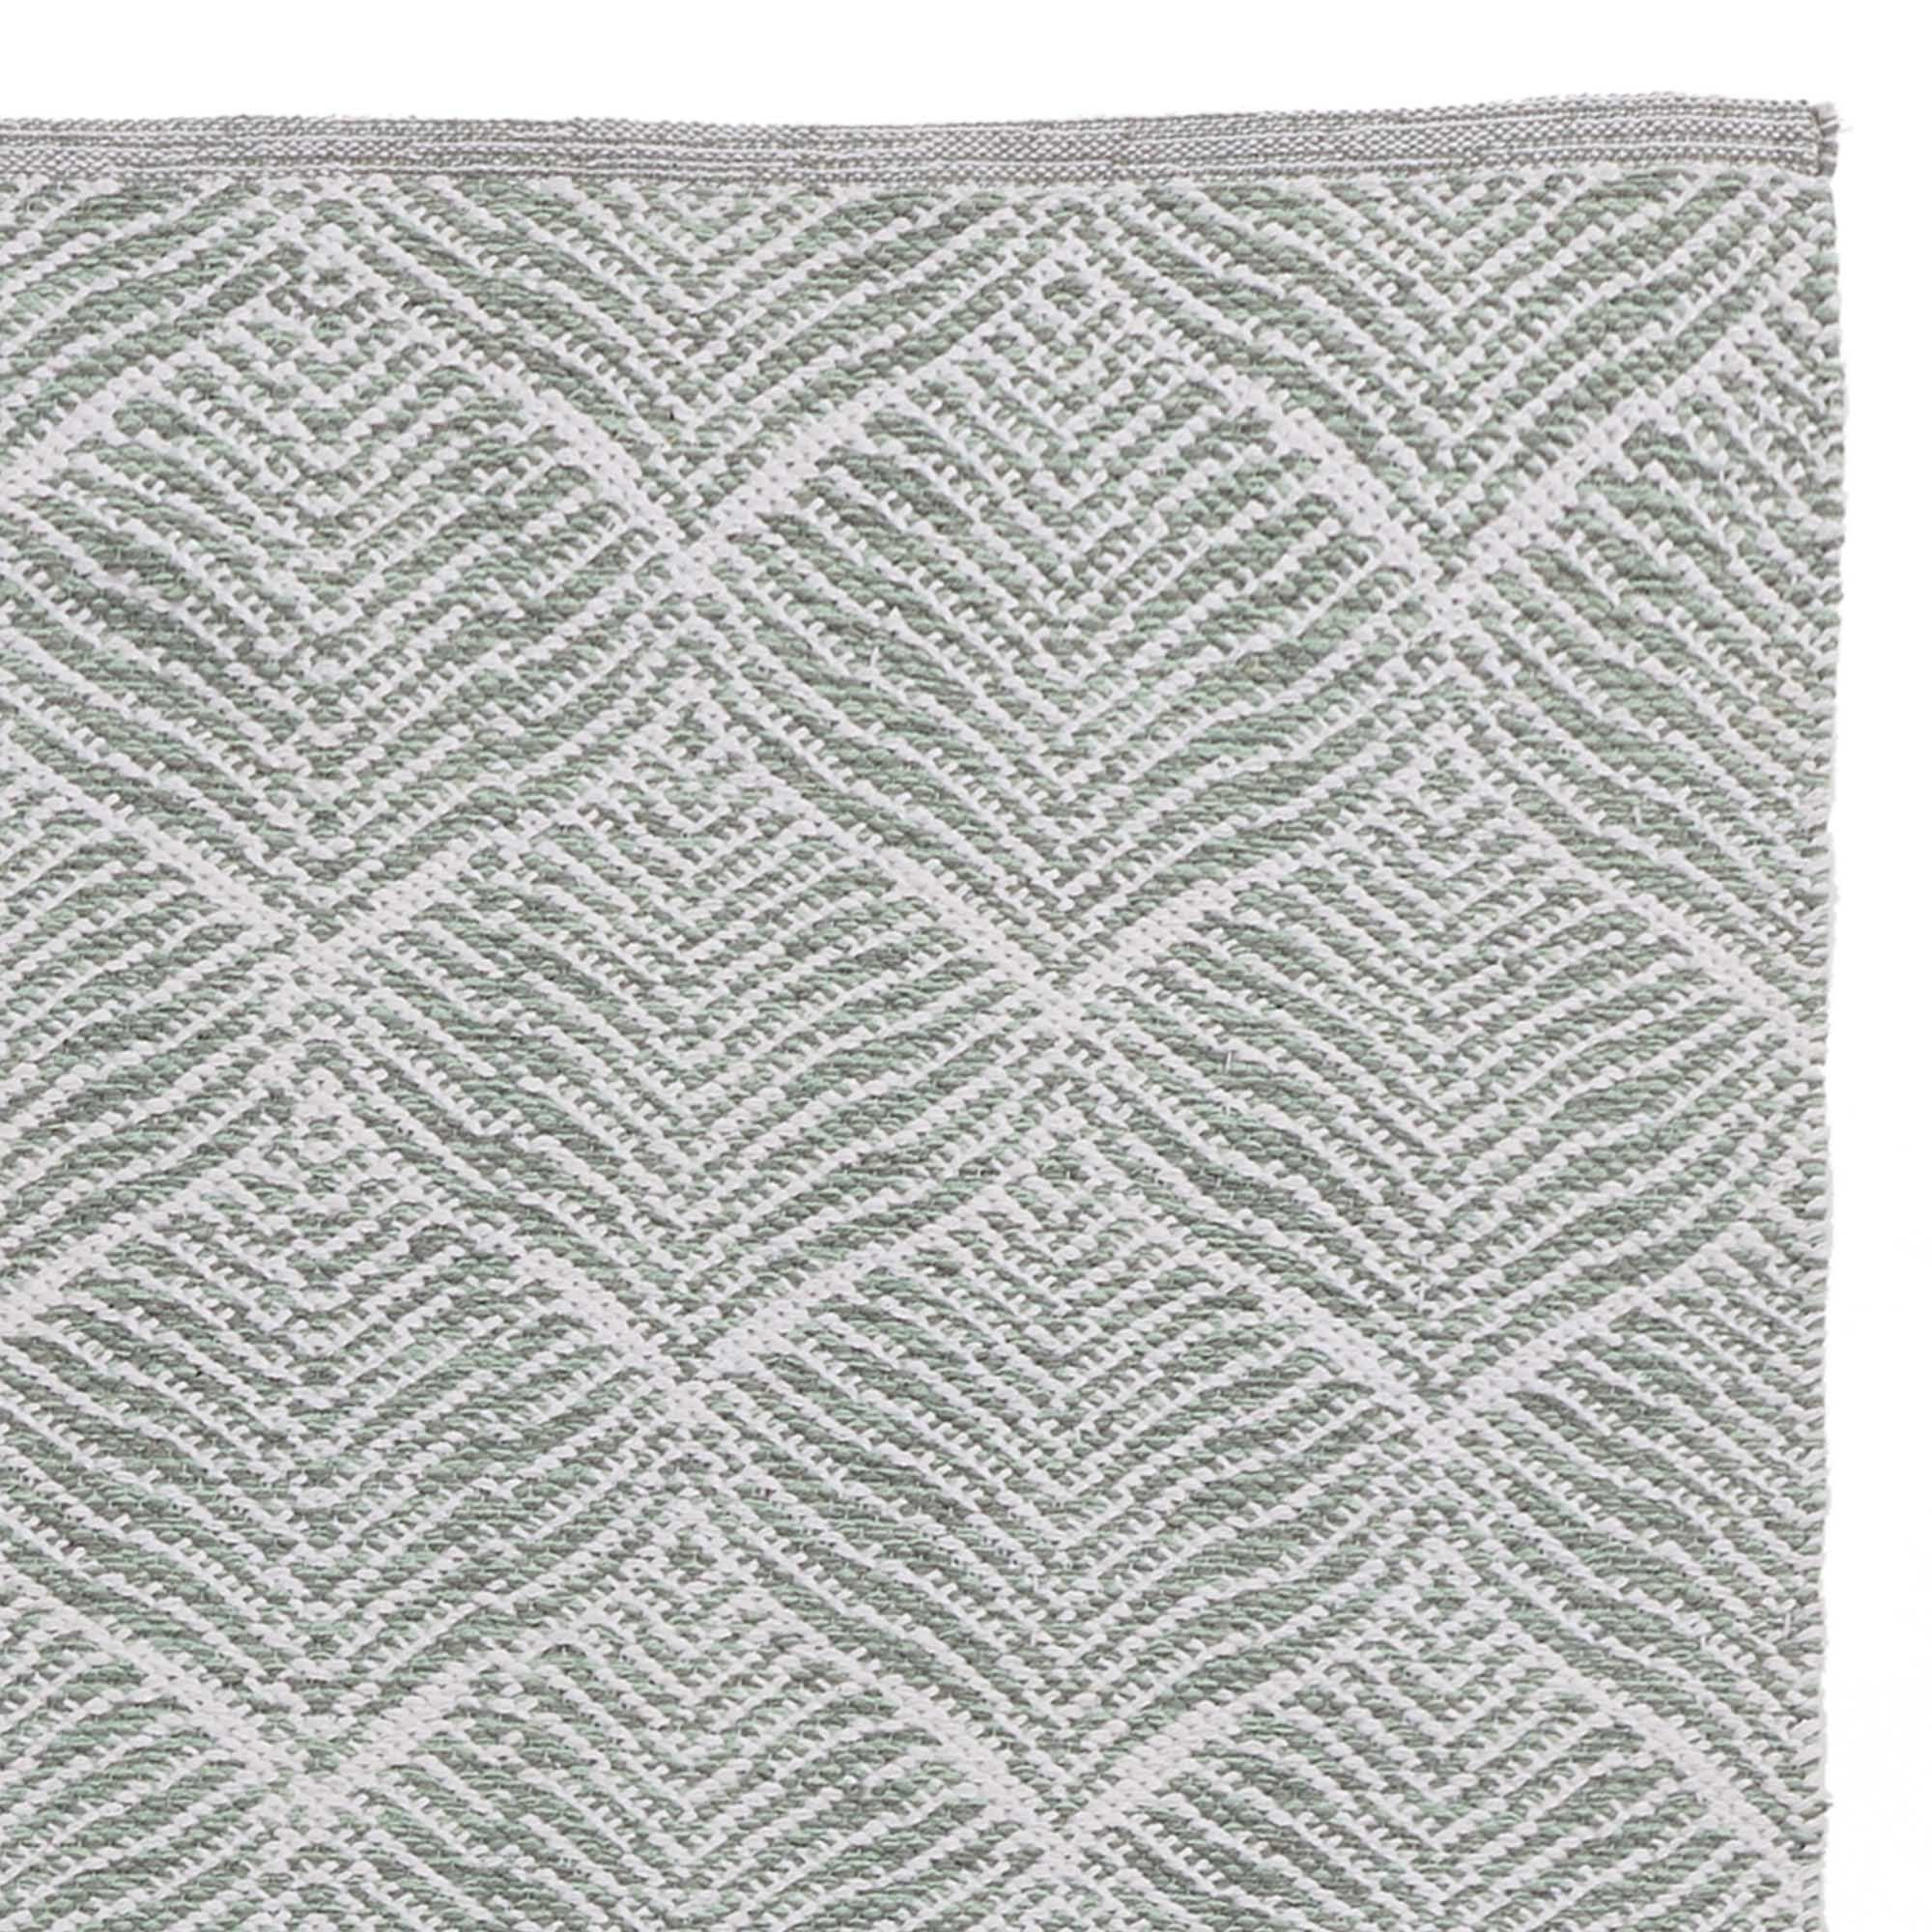 Shipry rug, grey green & natural white, 100% cotton